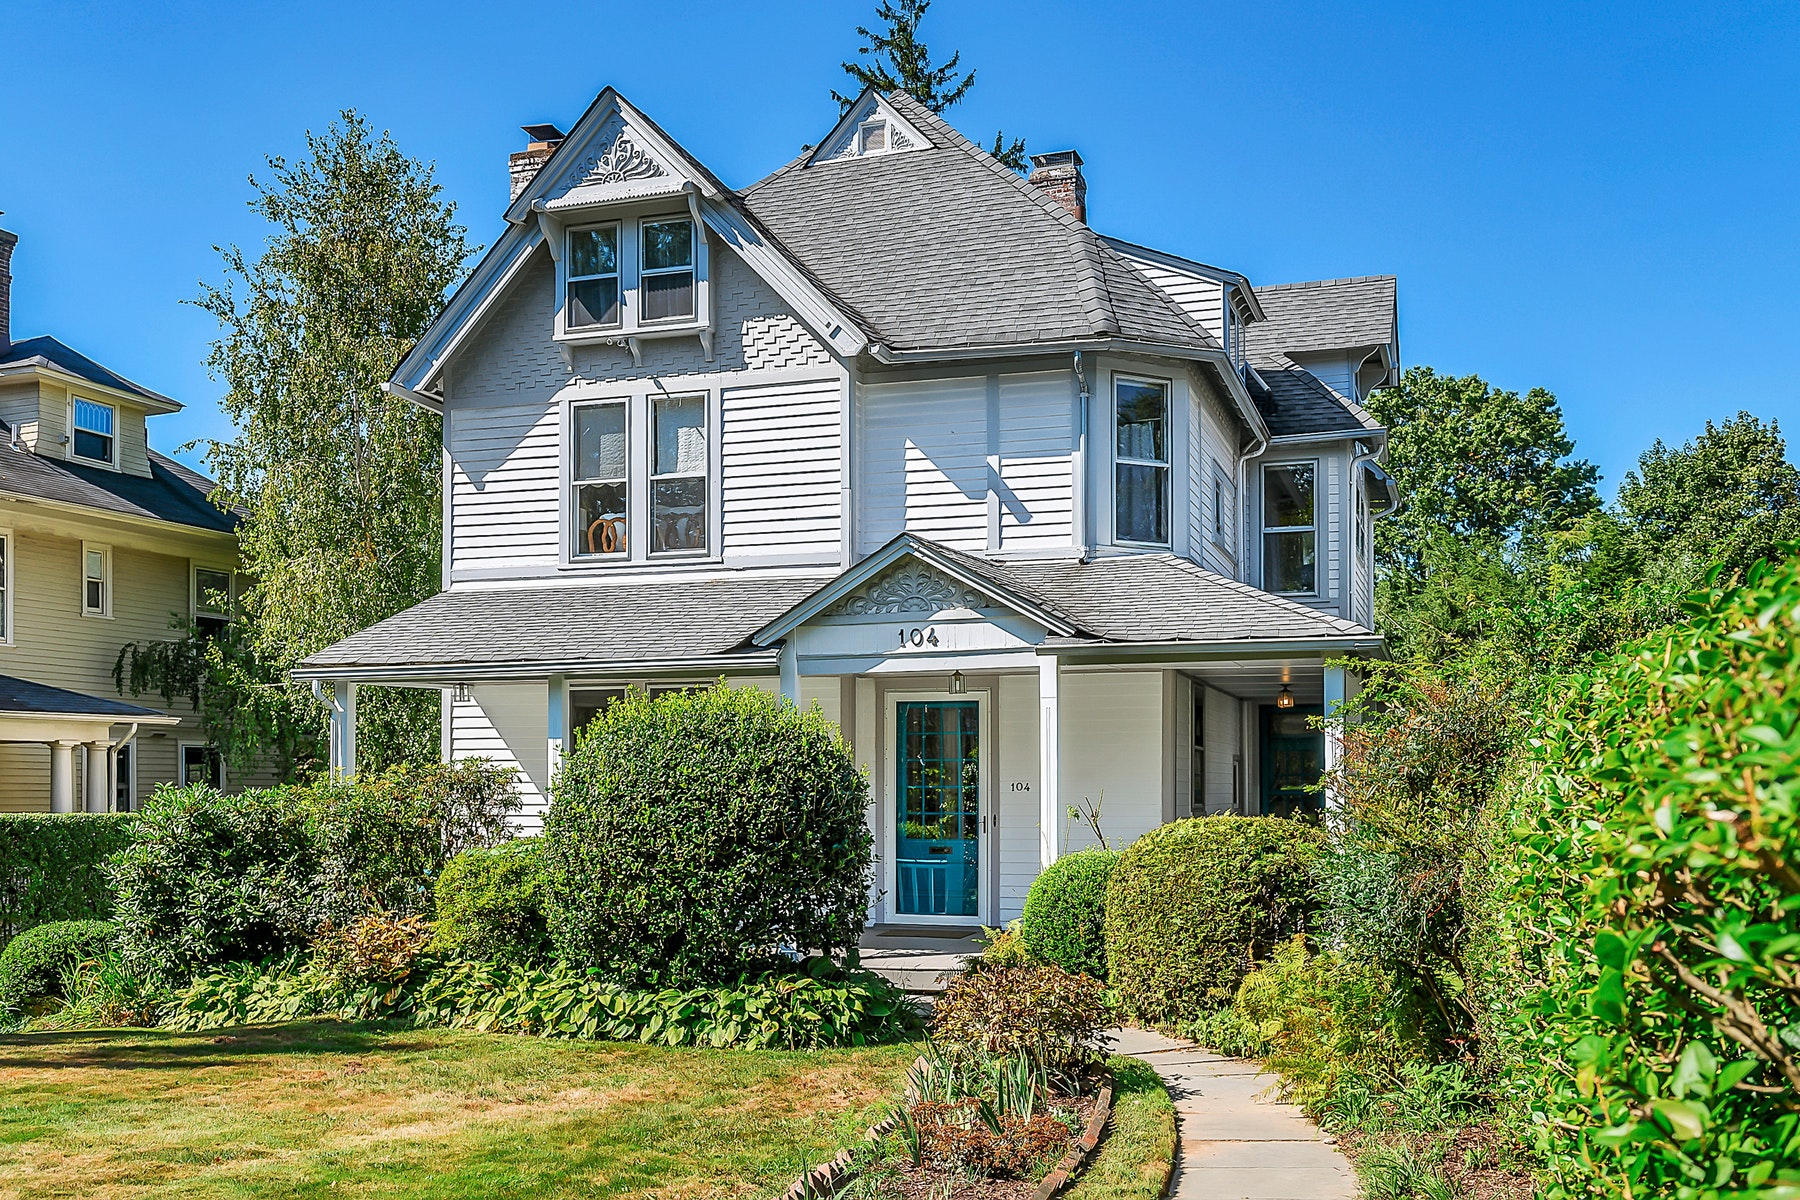 Single Family Homes for Active at Bright and Sunny Queen Anne Victorian 104 S. Fullerton Avenue Montclair, New Jersey 07042 United States